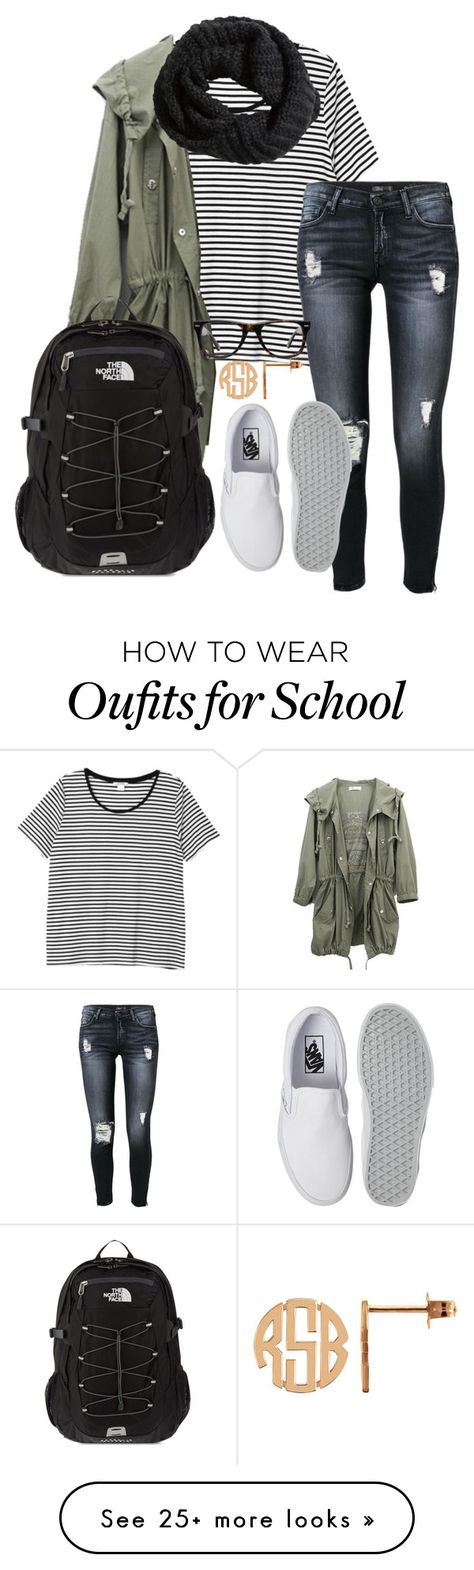 """""""School tomorrow"""" by ambermillard on Polyvore featuring мода, Monki, 7 For All Mankind, Vans, The North Face, Muse, H&M, women's clothing, women и female"""